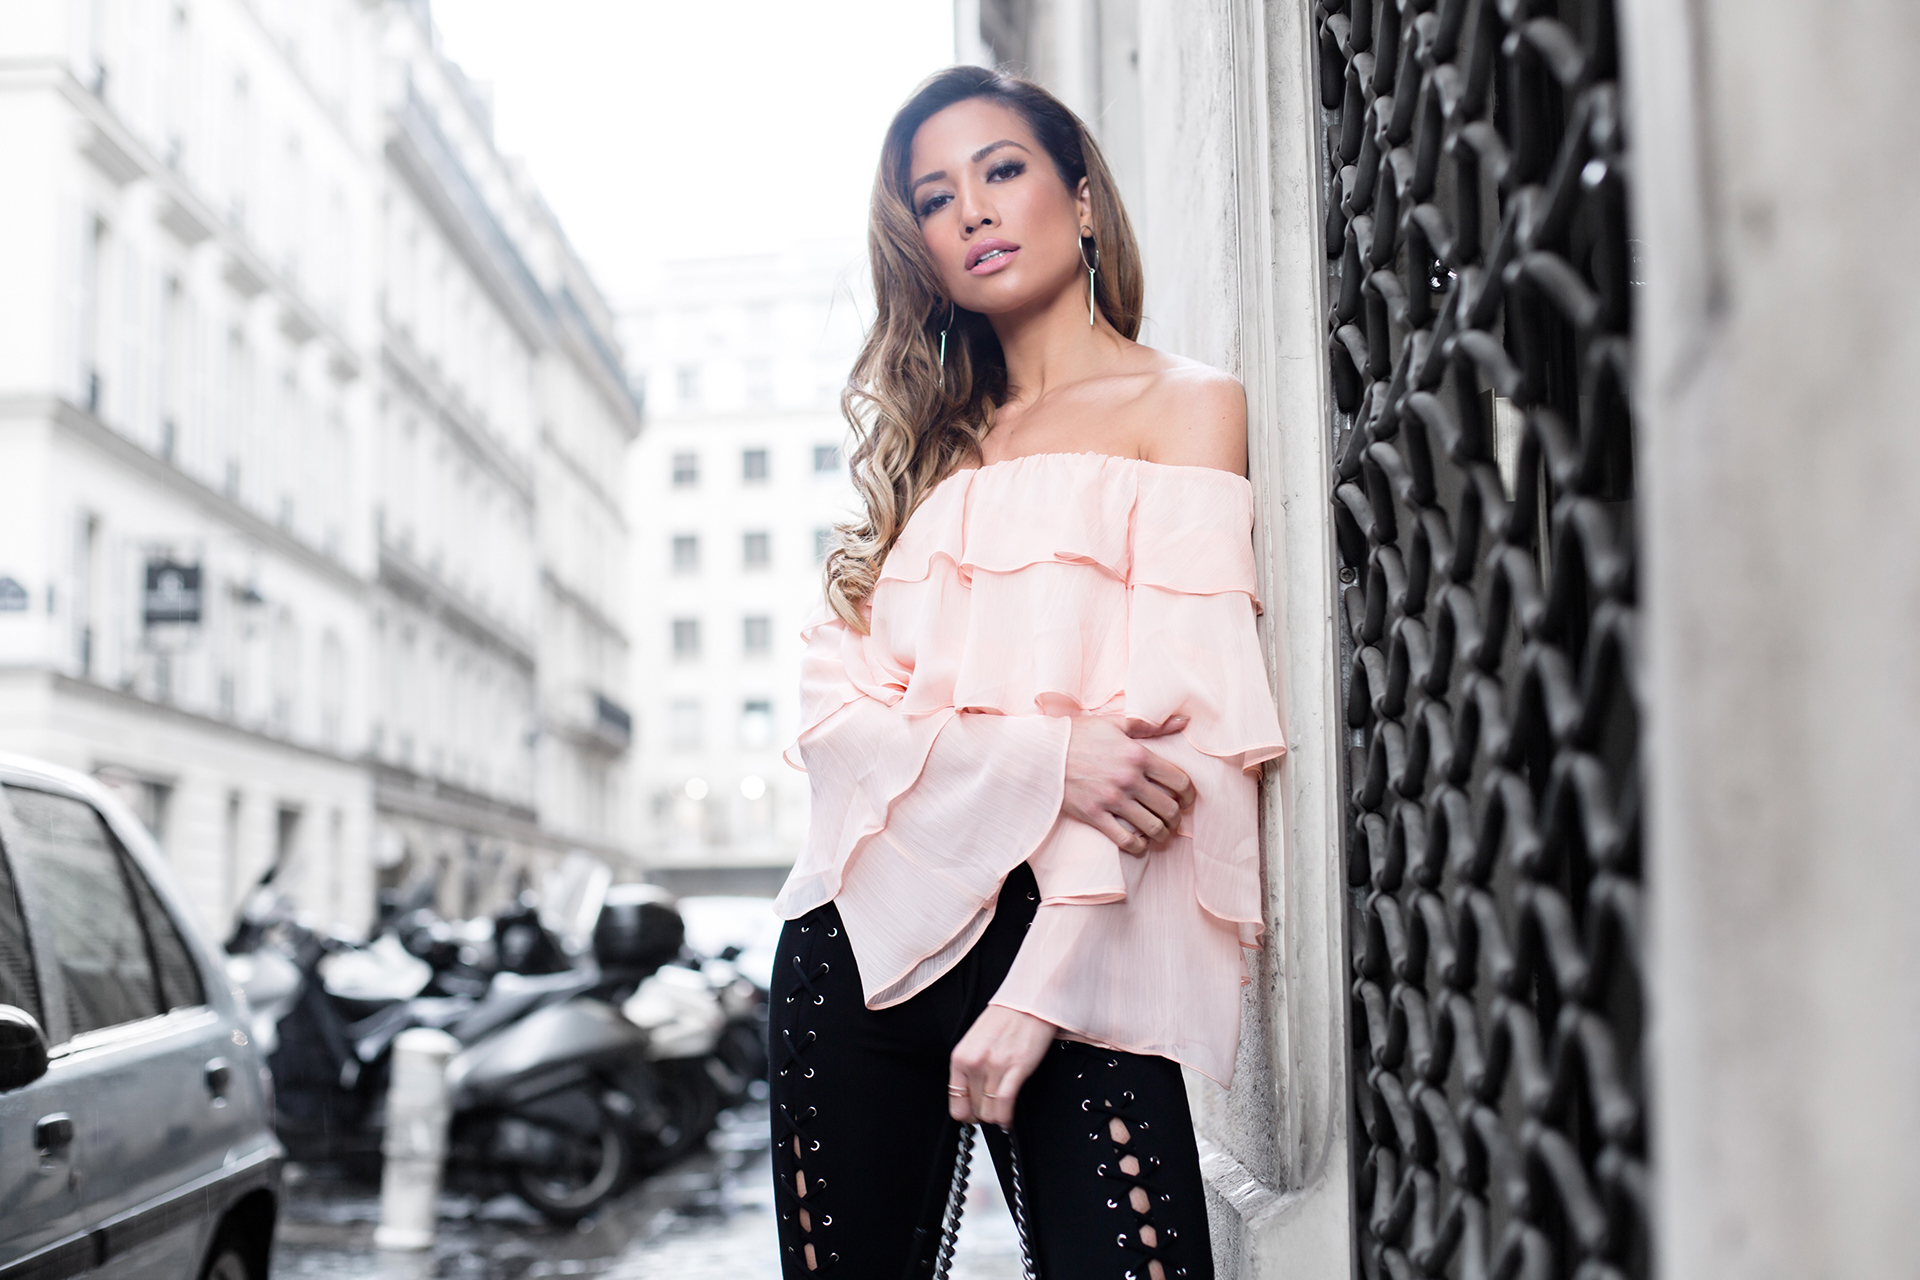 597e57c99b How to Dress Up Your Staple Pieces For A Night Out - mywhiteT